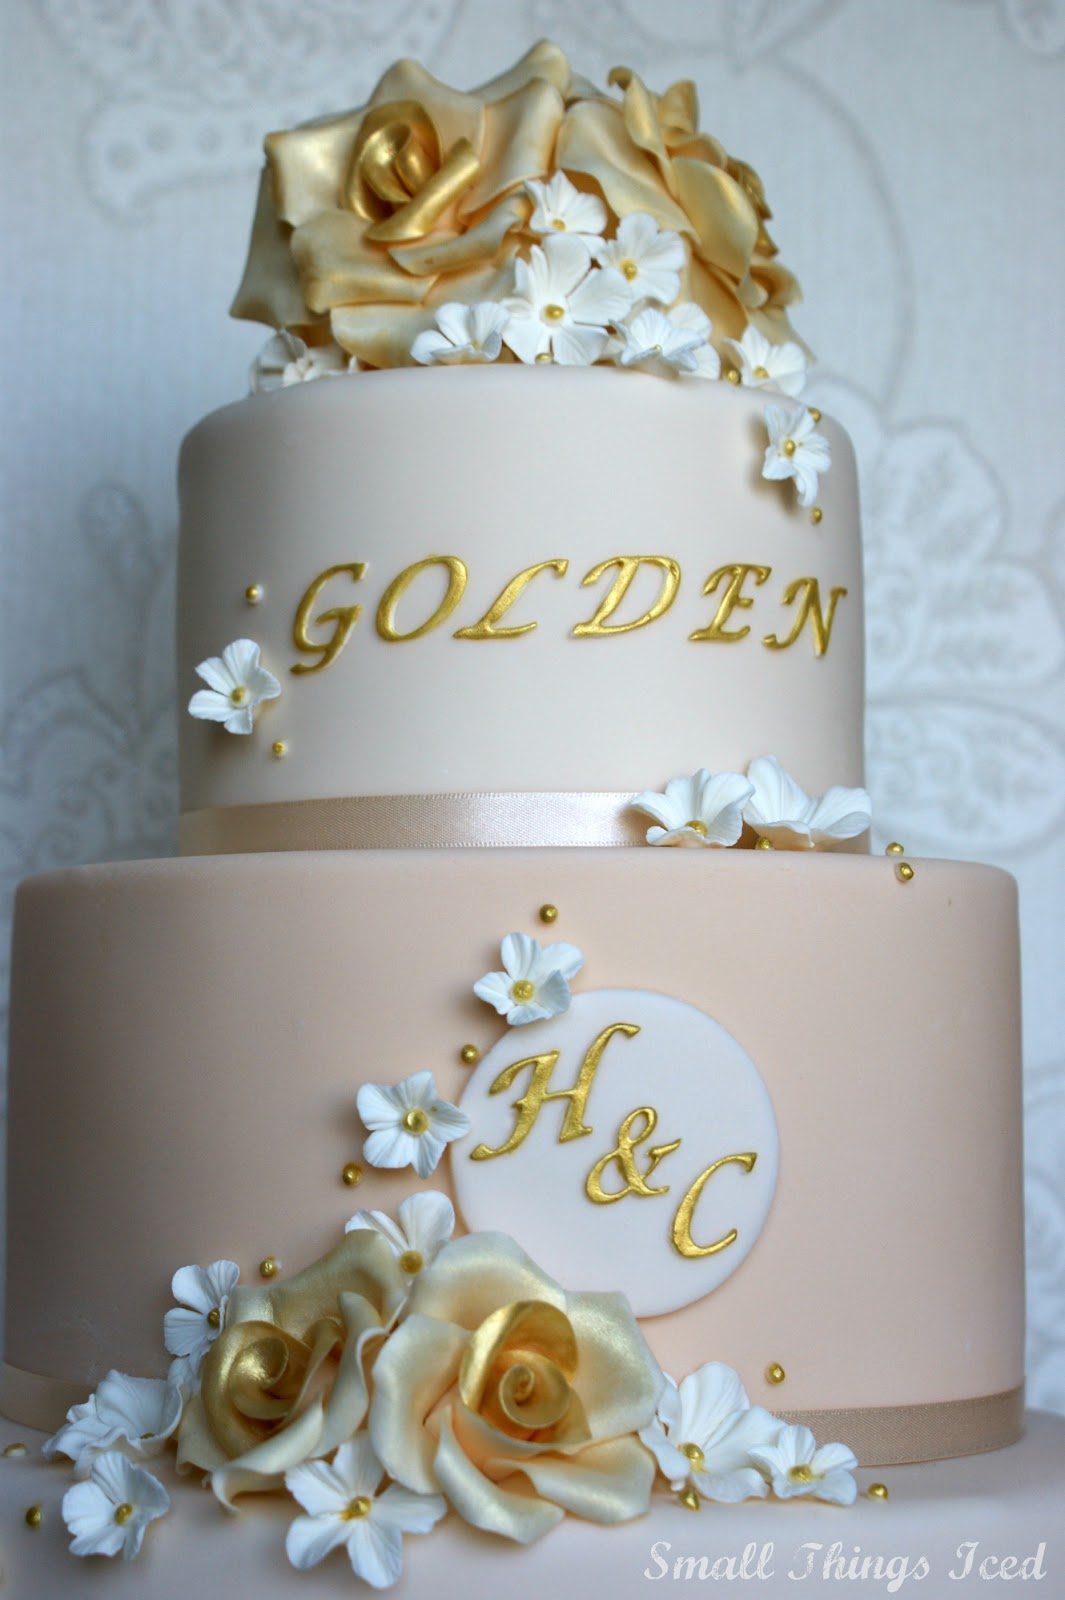 Small Things Iced Golden Wedding Anniversary Cake